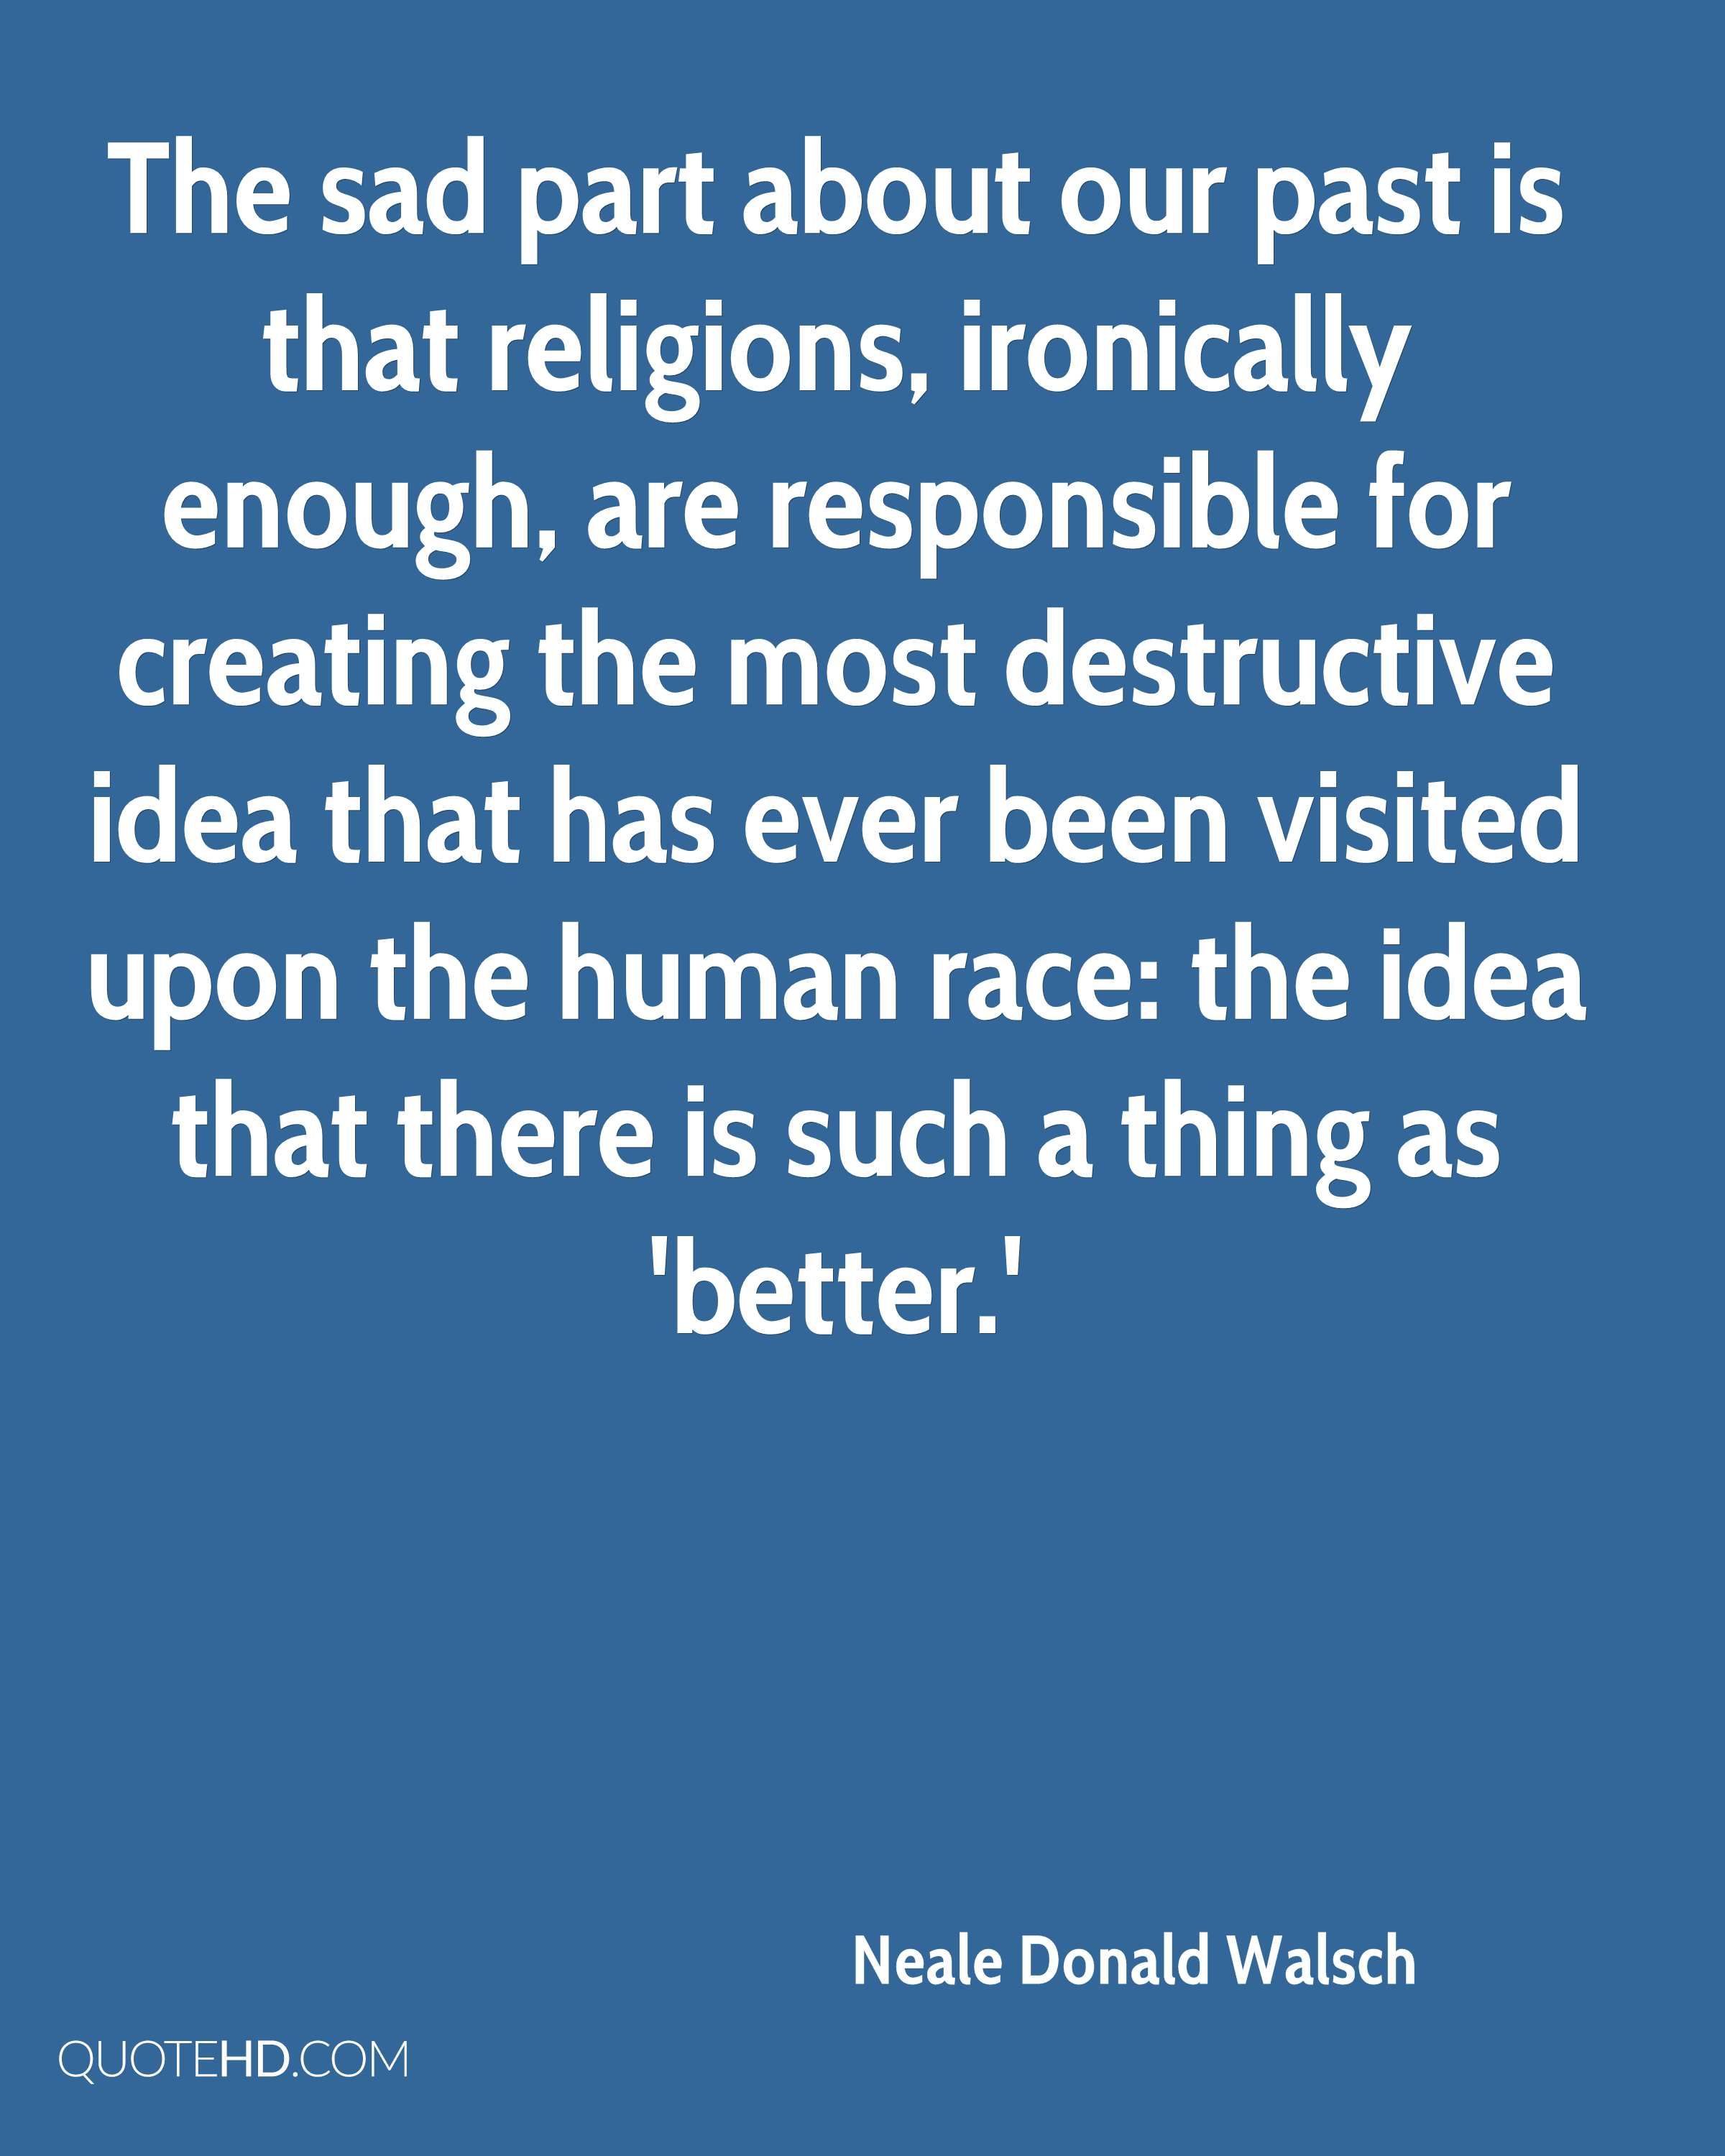 The sad part about our past is that religions, ironically enough, are responsible for creating the most destructive idea that has ever been visited upon the human race: the idea that there is such a thing as 'better.'